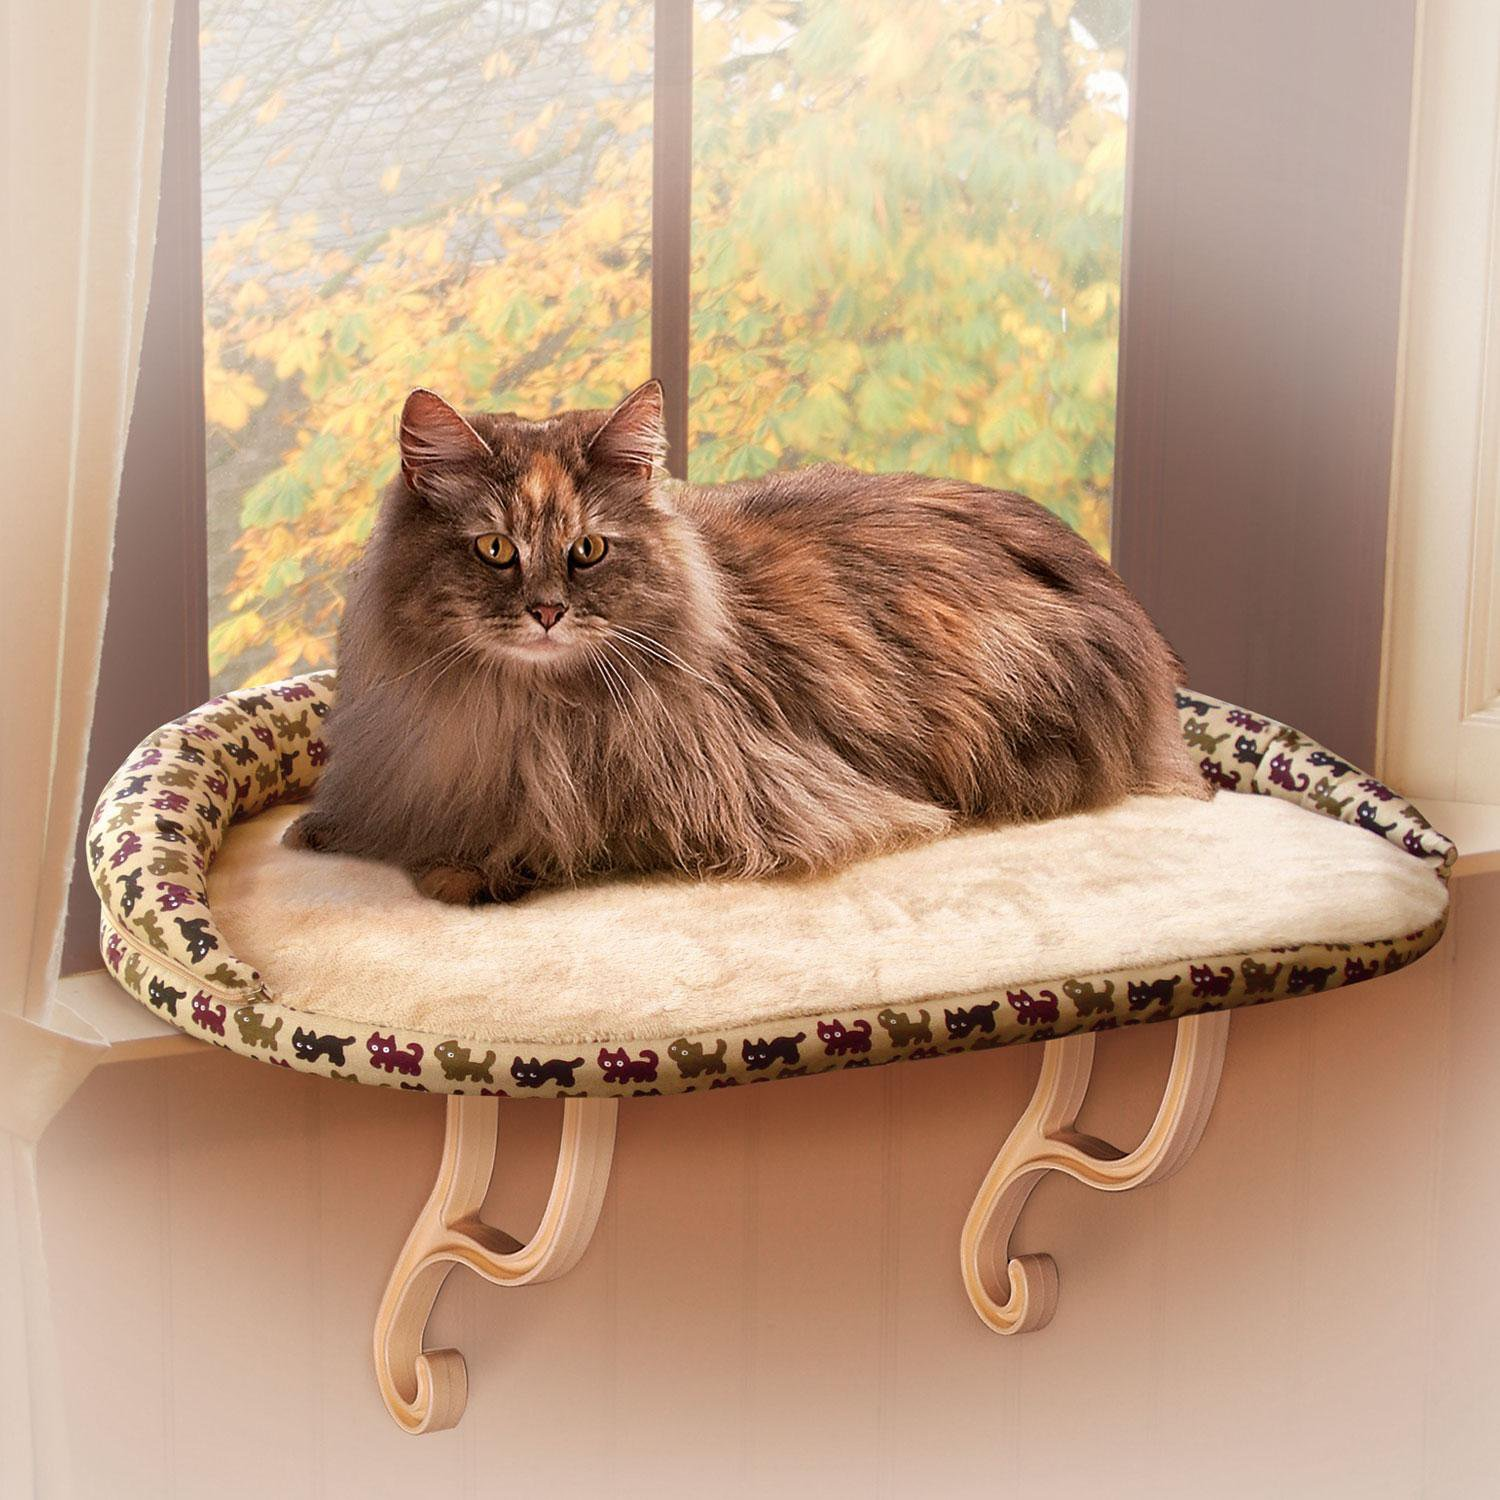 KH Kitty Sill Bolster Deluxe Cat Window Perch Petco